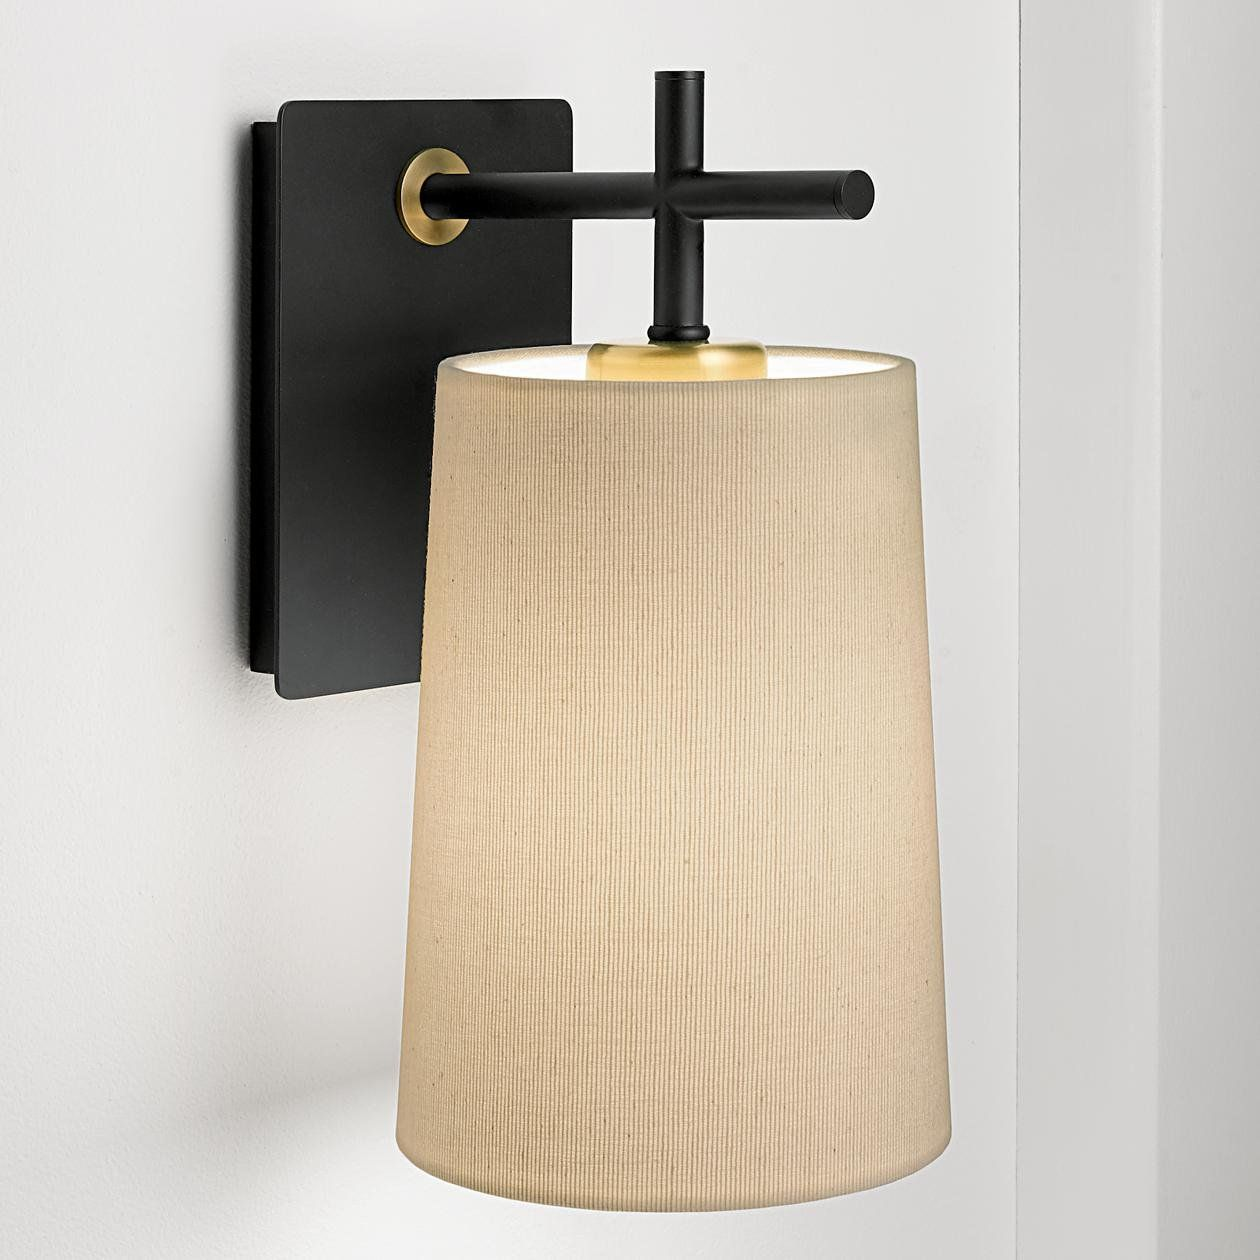 Satin Black and Brushed Brass Wall Light & Shade in 2019